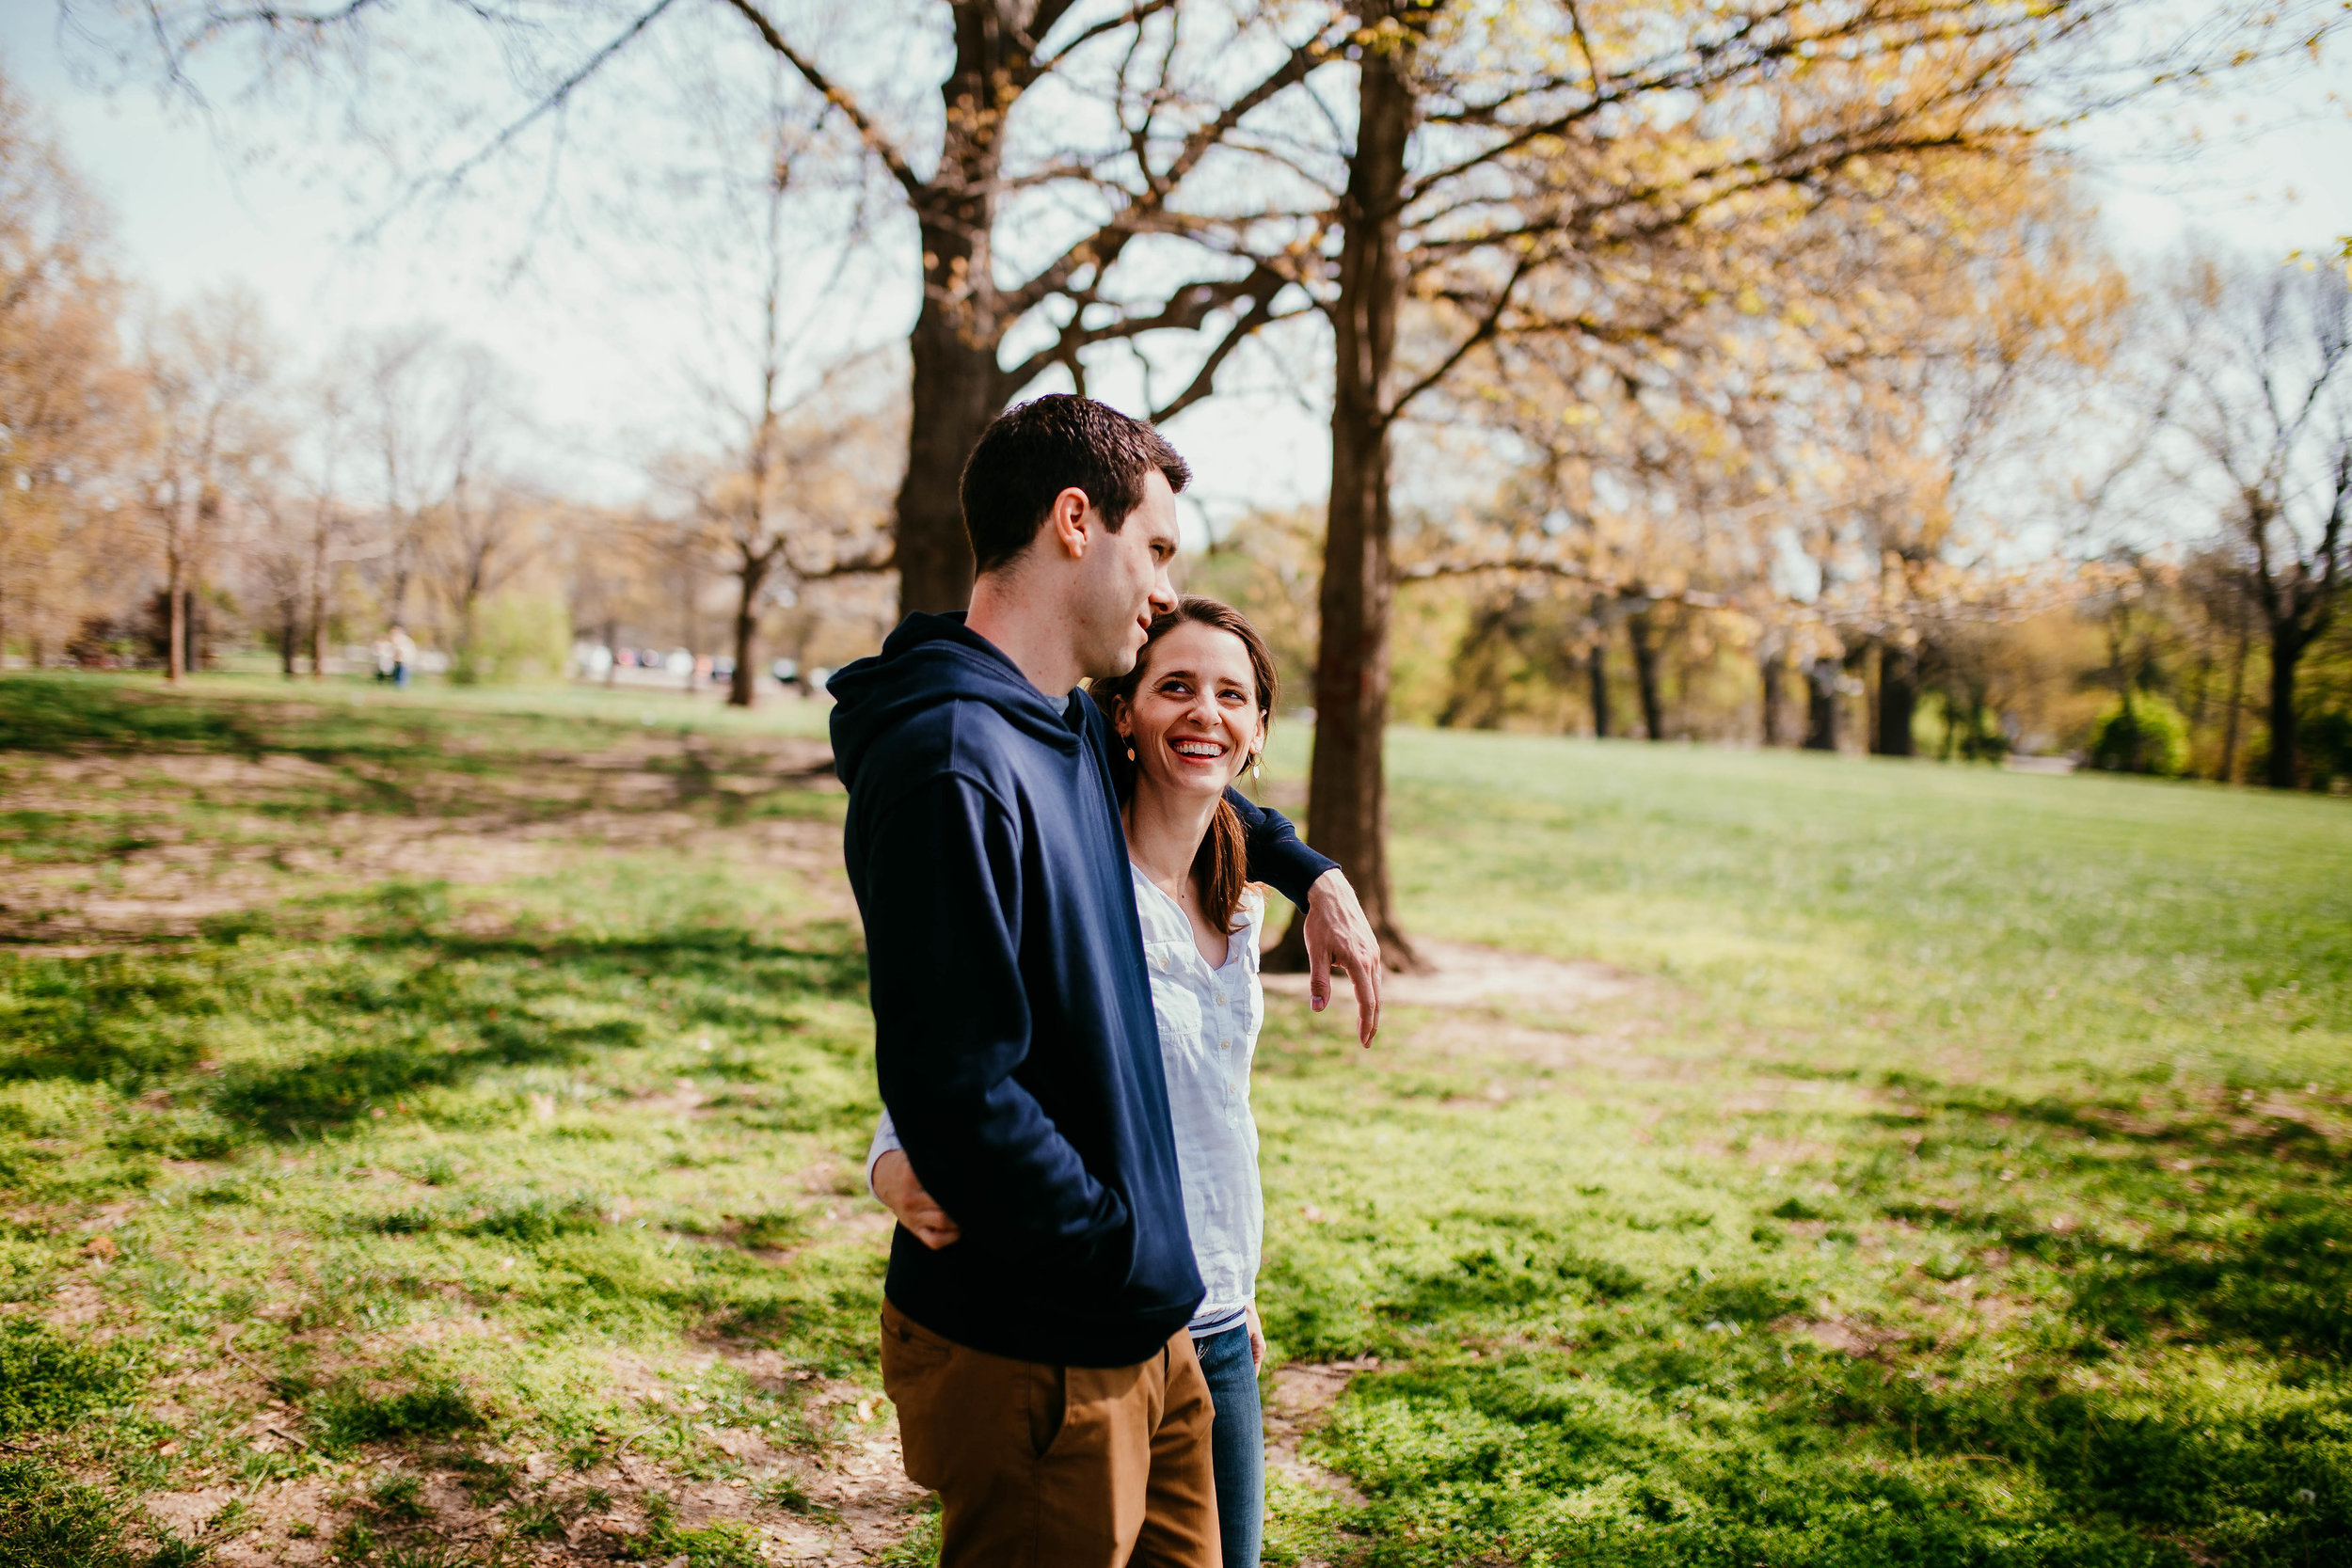 The London-Evans Family | Hannahill Photography | Kansas City, MO